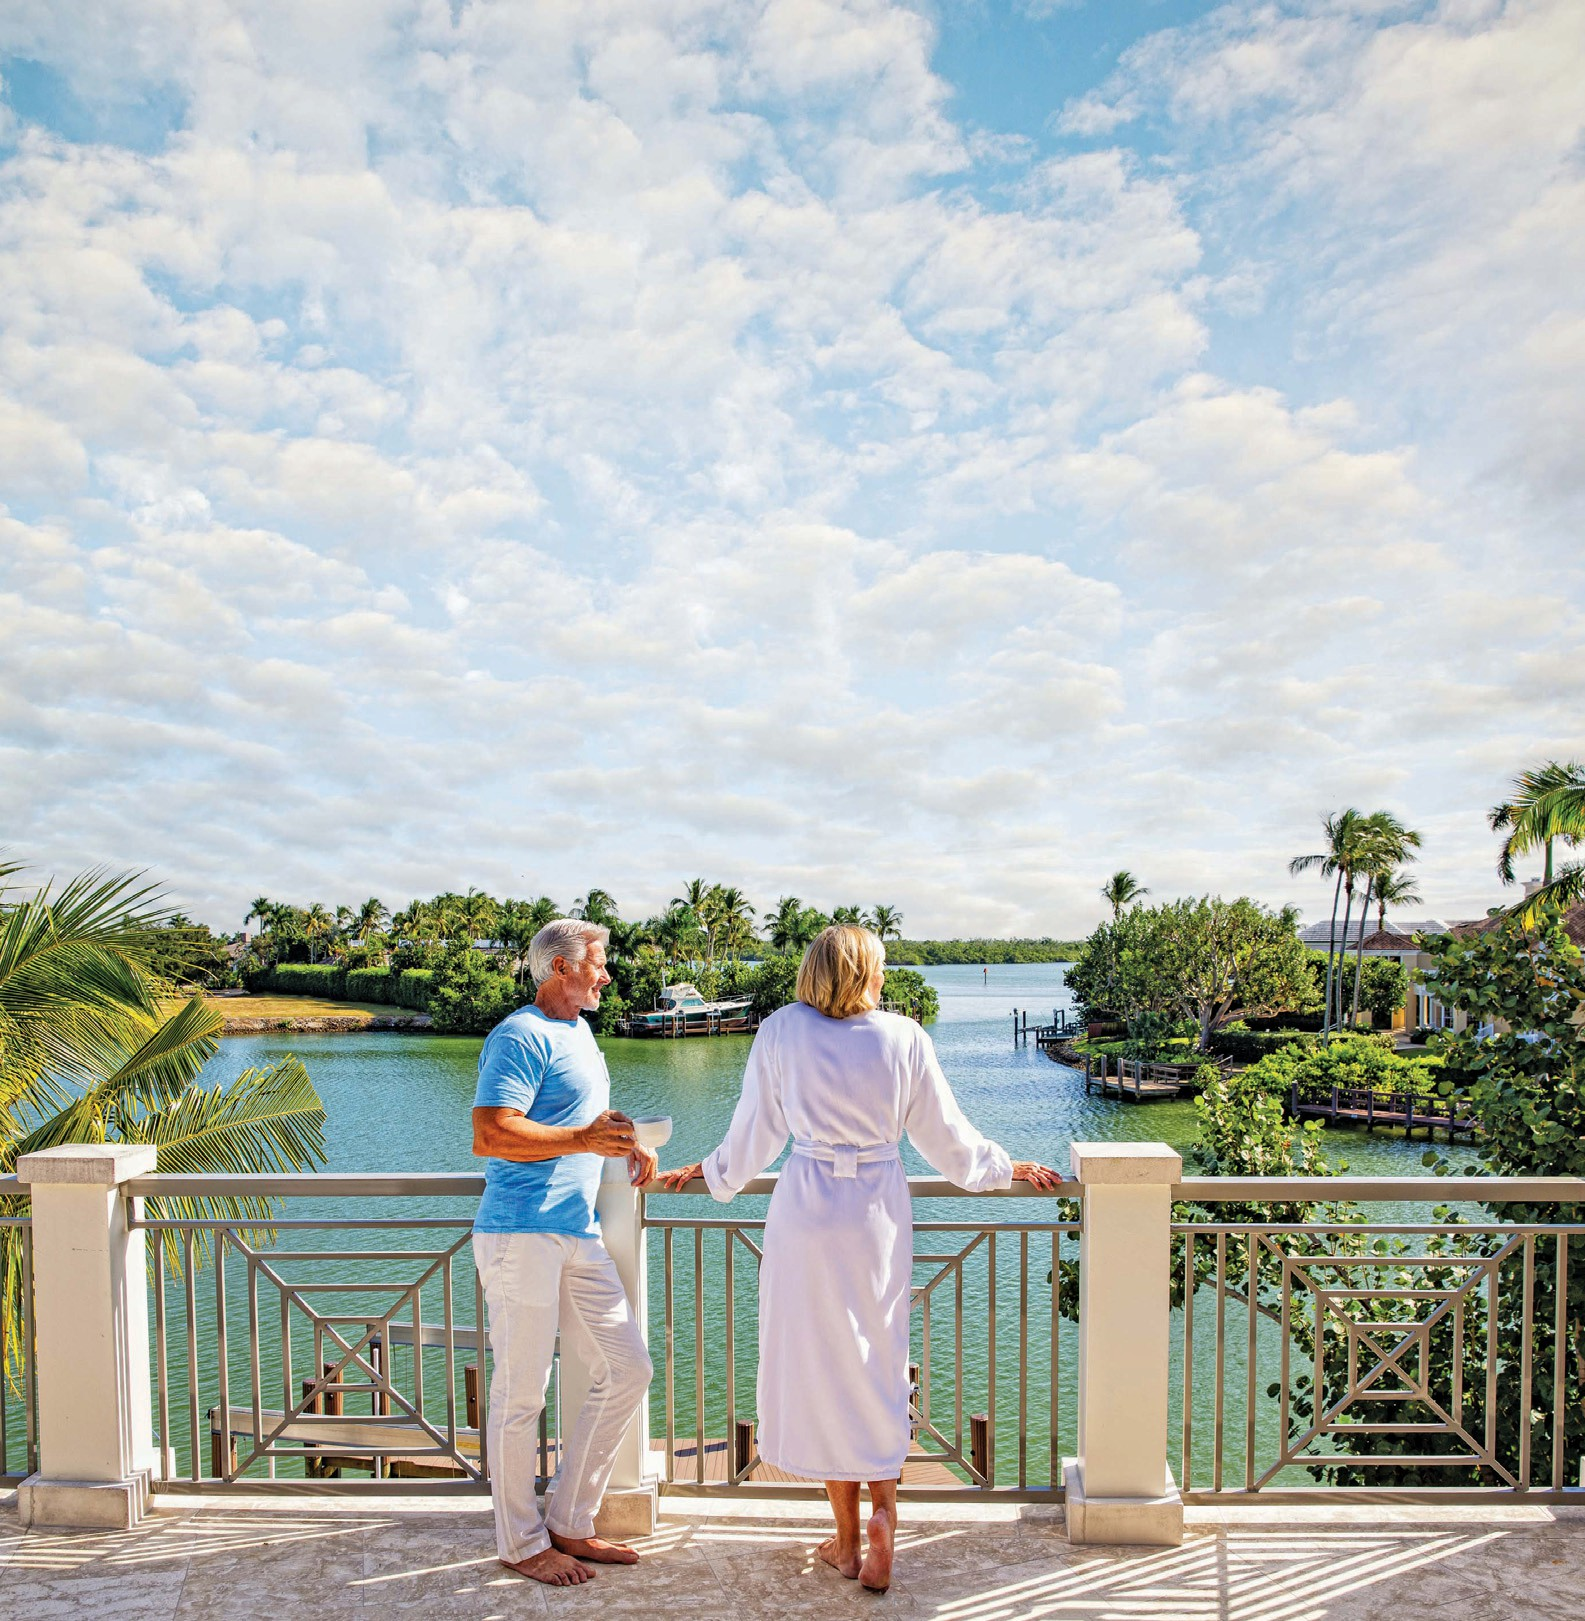 For the Chelston custom estate model by London Bay Homes in Old Naples, Romanza designer Melissa Allen opted for an island-inspired look, choosing features ...